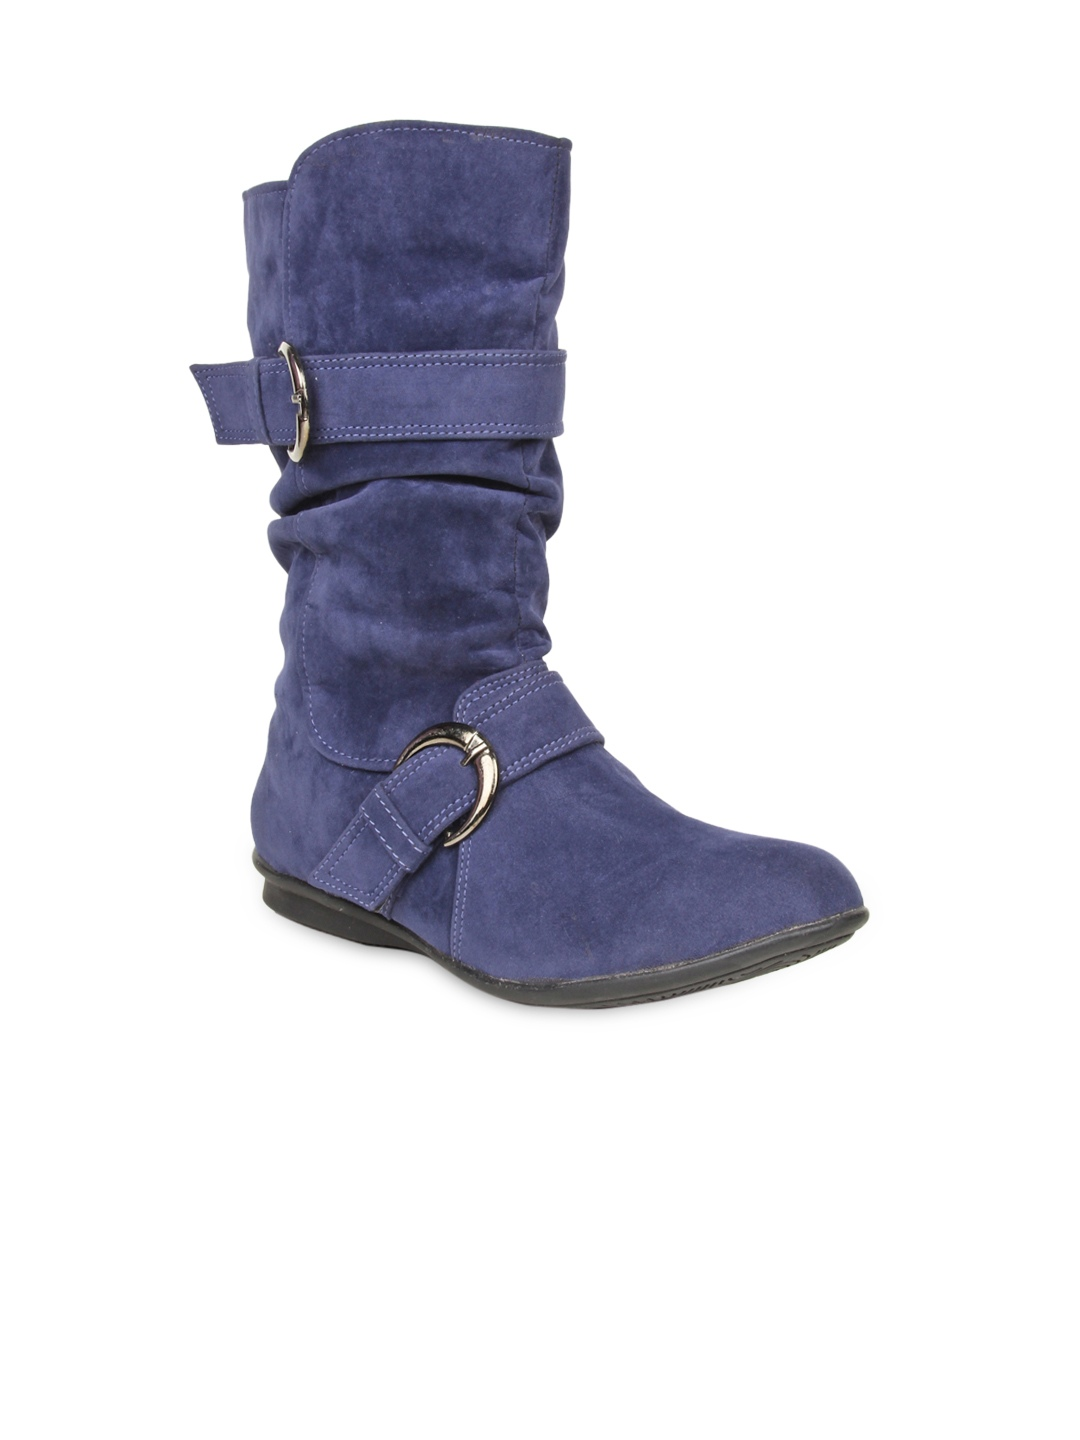 myntra bruno manetti navy blue suede flat boots